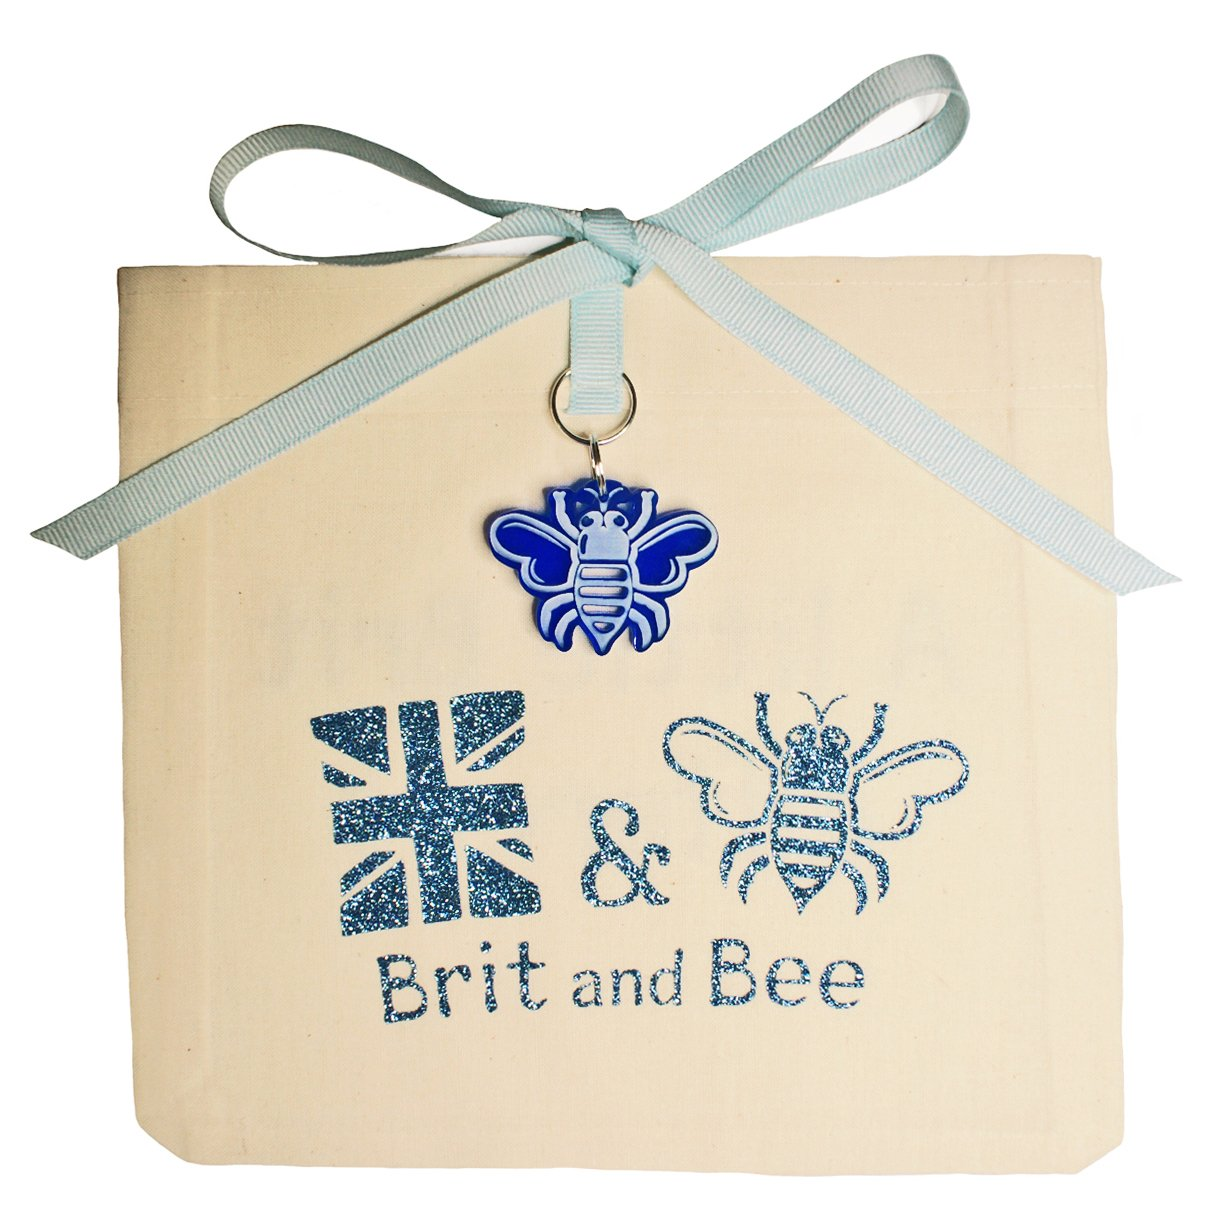 Kappa Kappa Gamma Ornament | Brit and Bee